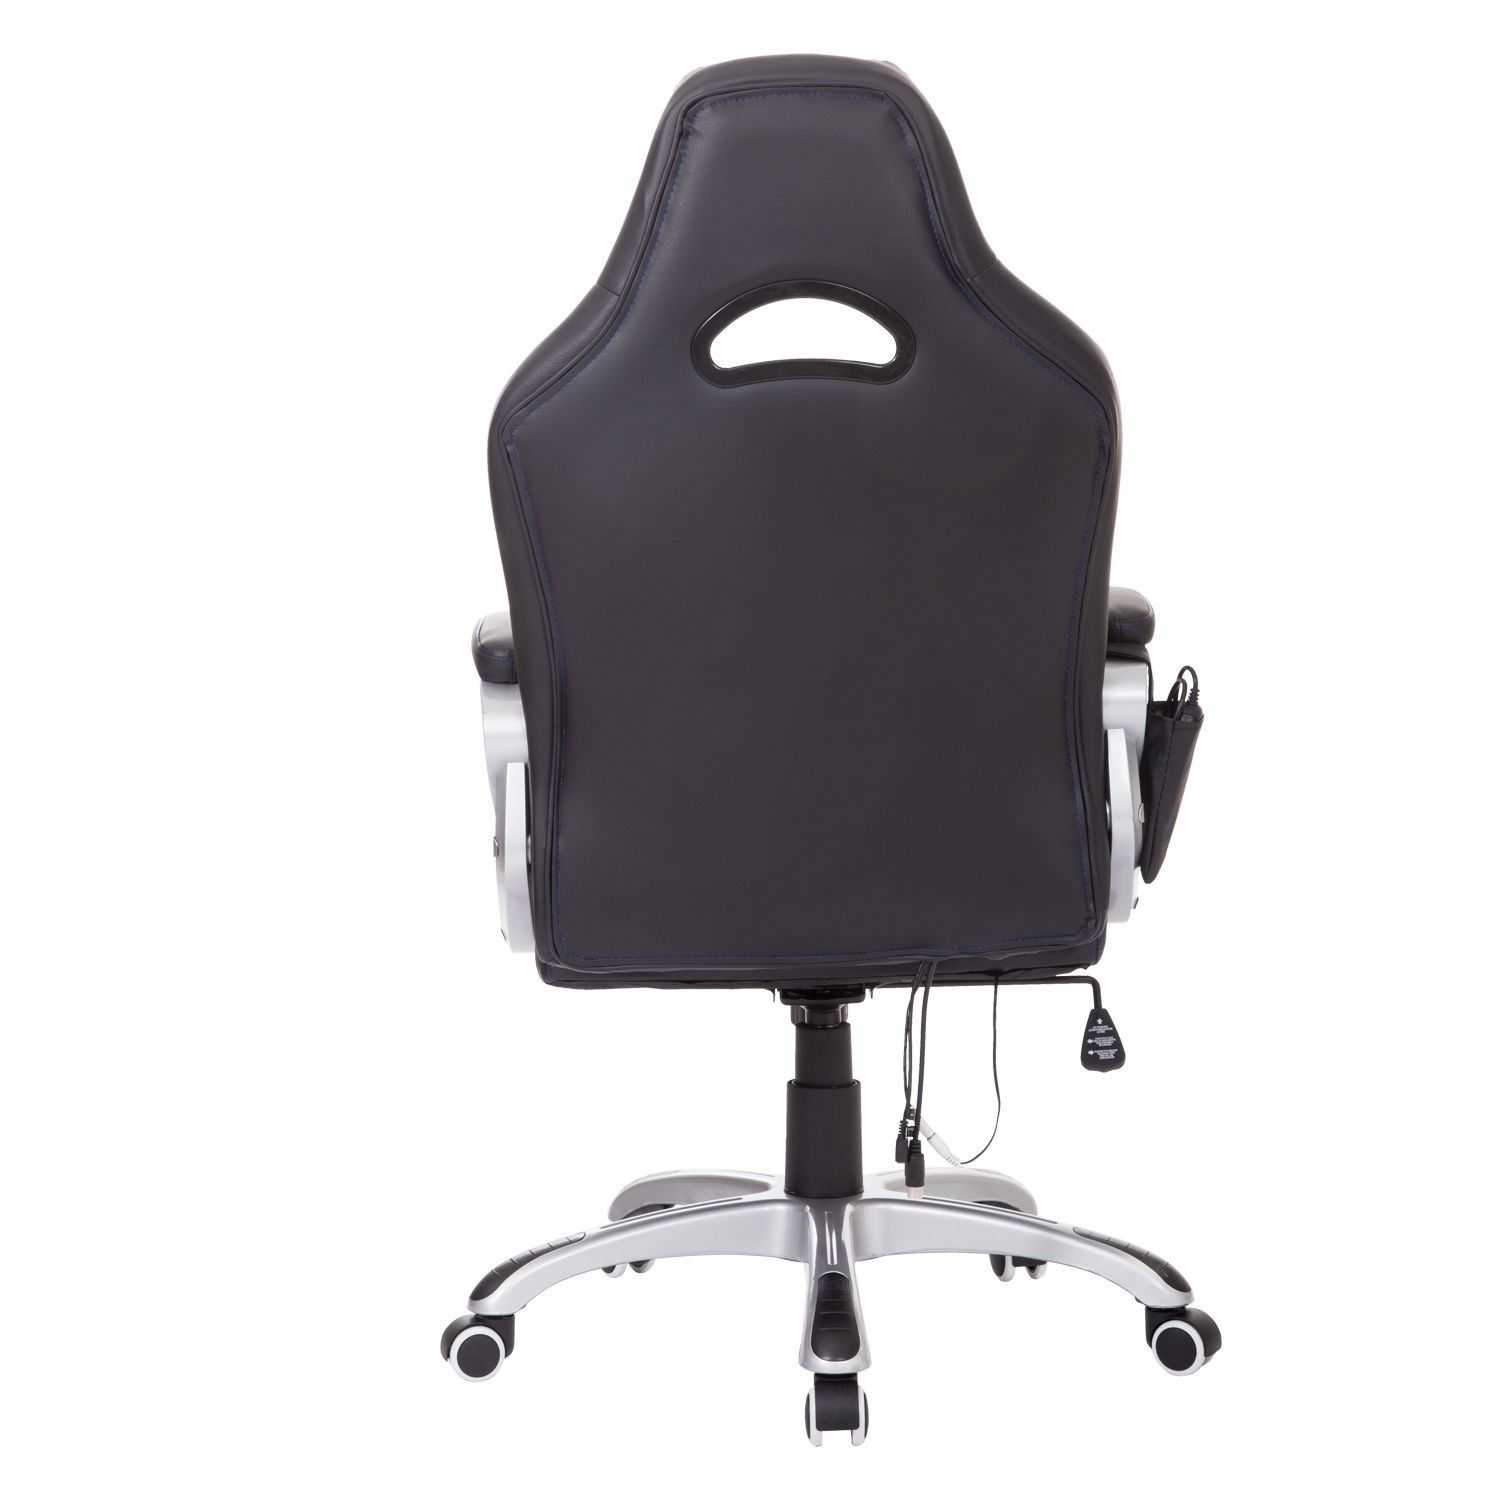 Massage Chair For Car Homcom Adjustable Office Massage Race Car Game Chair